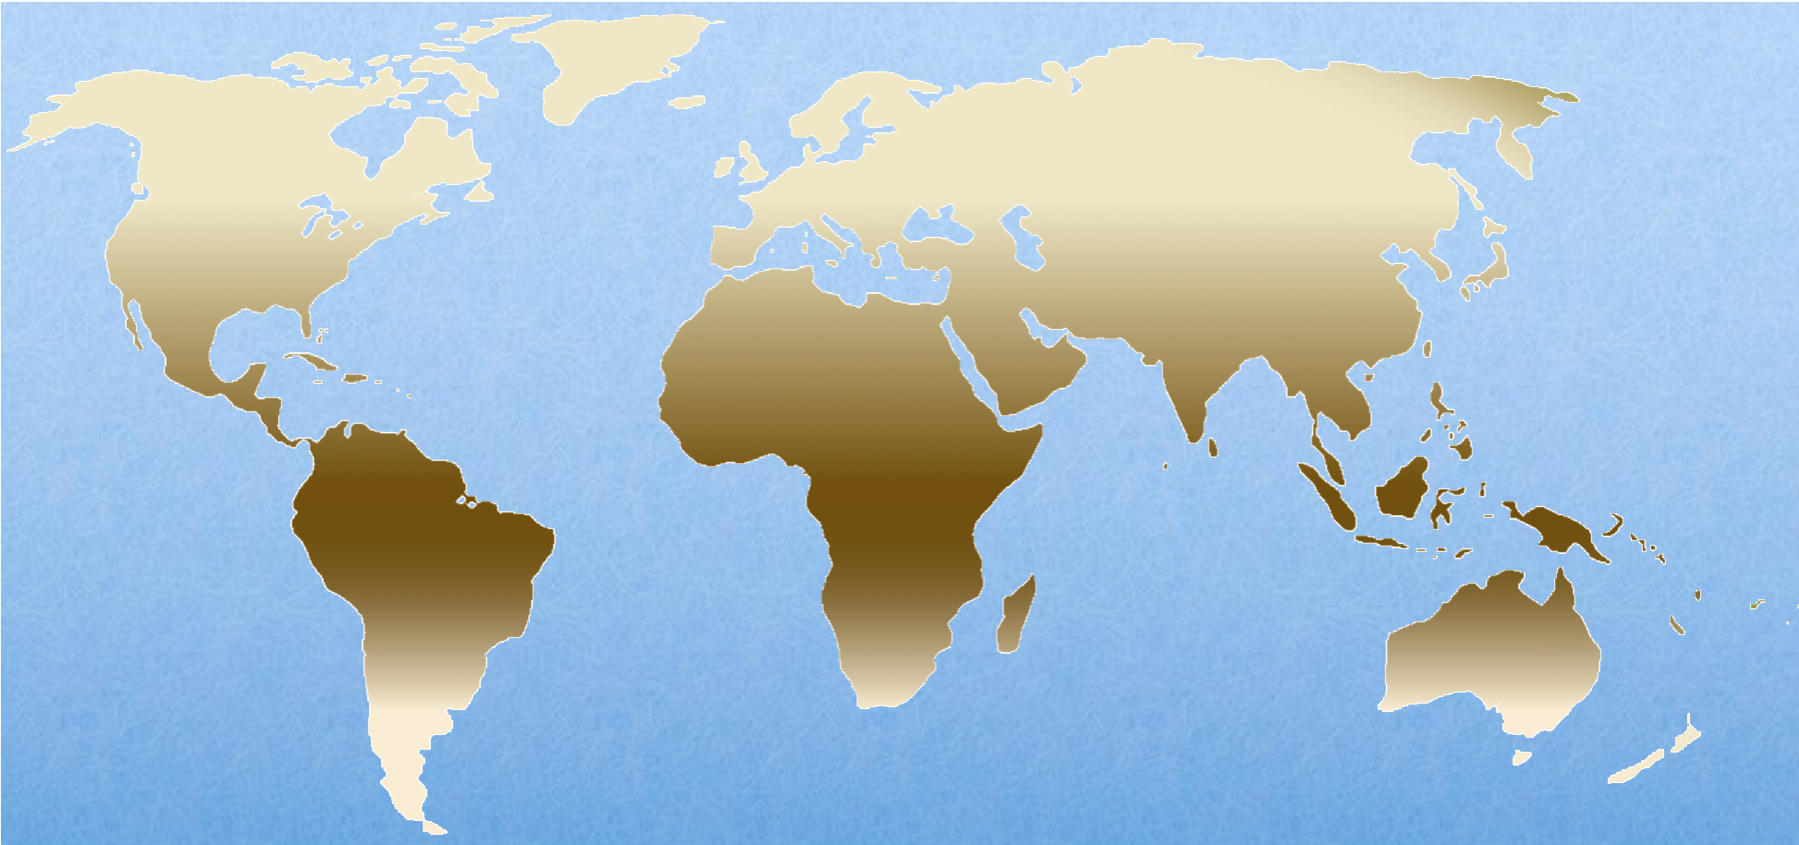 Figure 17.  Human skin color is expressed on a continuum as a result of polygenic inheritance.  In lower latitudes,selection pressures promote darker skin to protect from cellular damage from UV exposure. Lighter skin promotes higher vitamin D production, essential in the more northern latitudes.